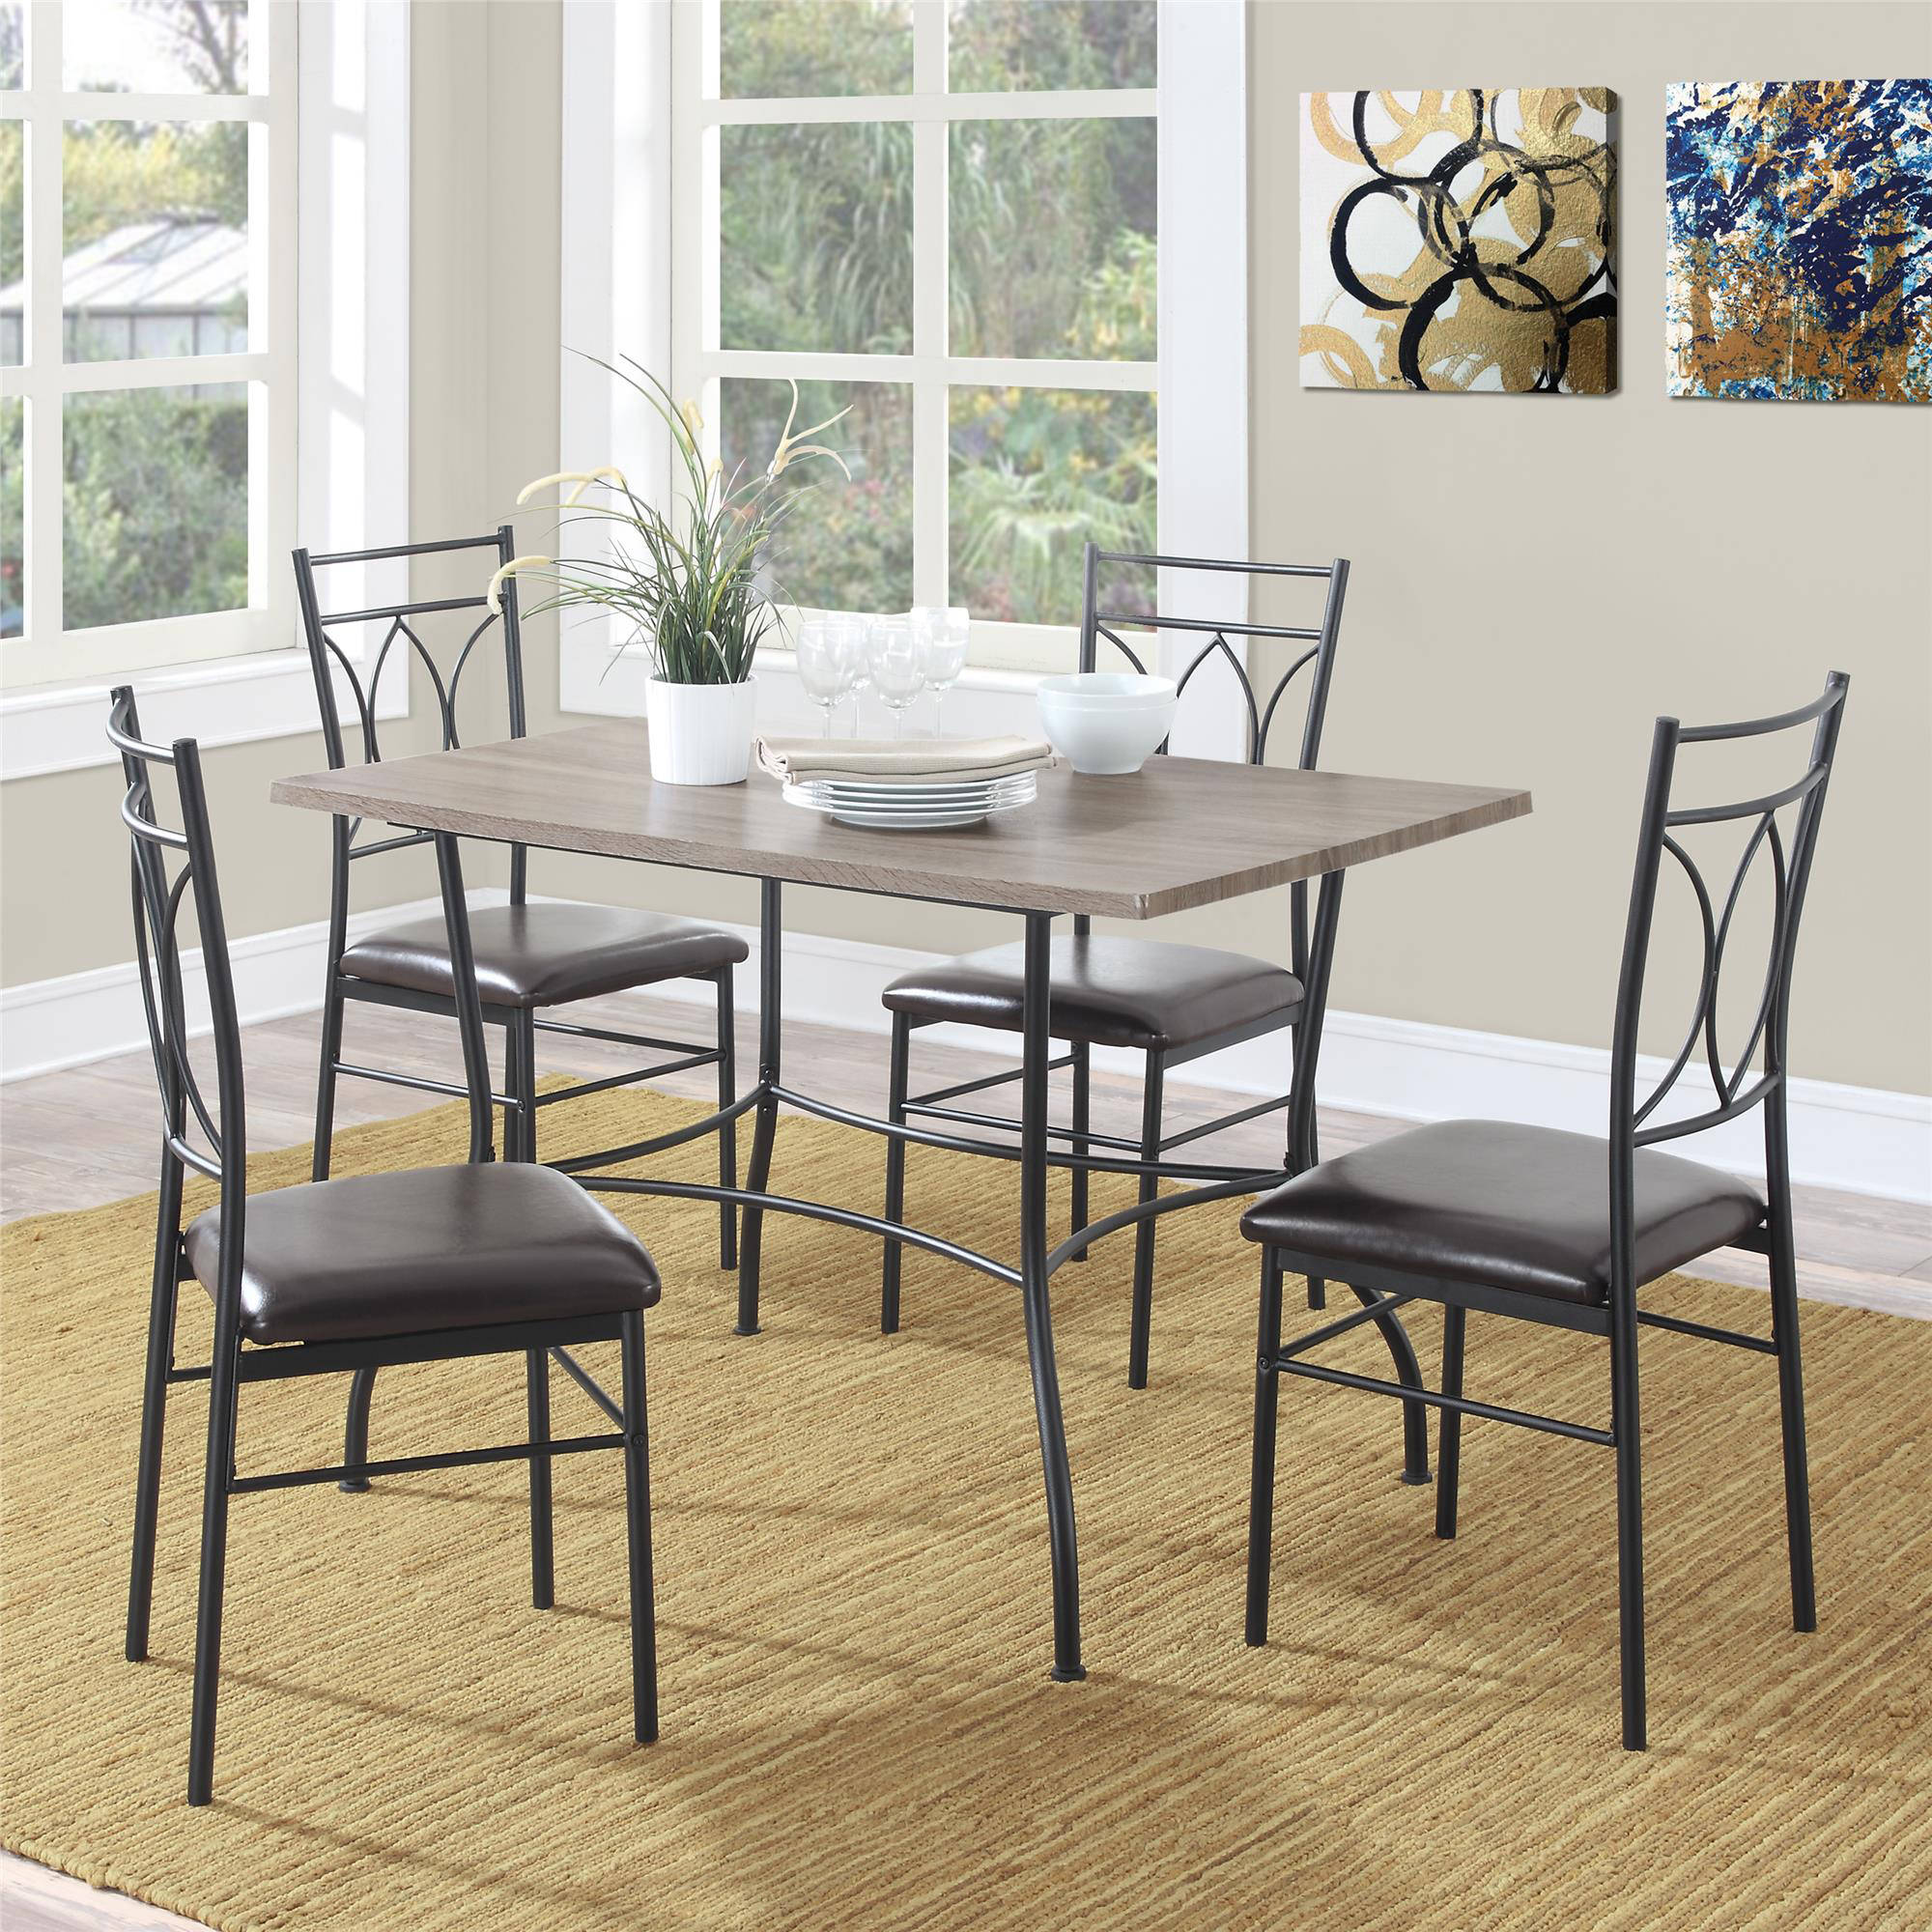 Lovely Dorel Living Shelby 5 Piece Rustic Wood And Metal Dining Set   Walmart.com